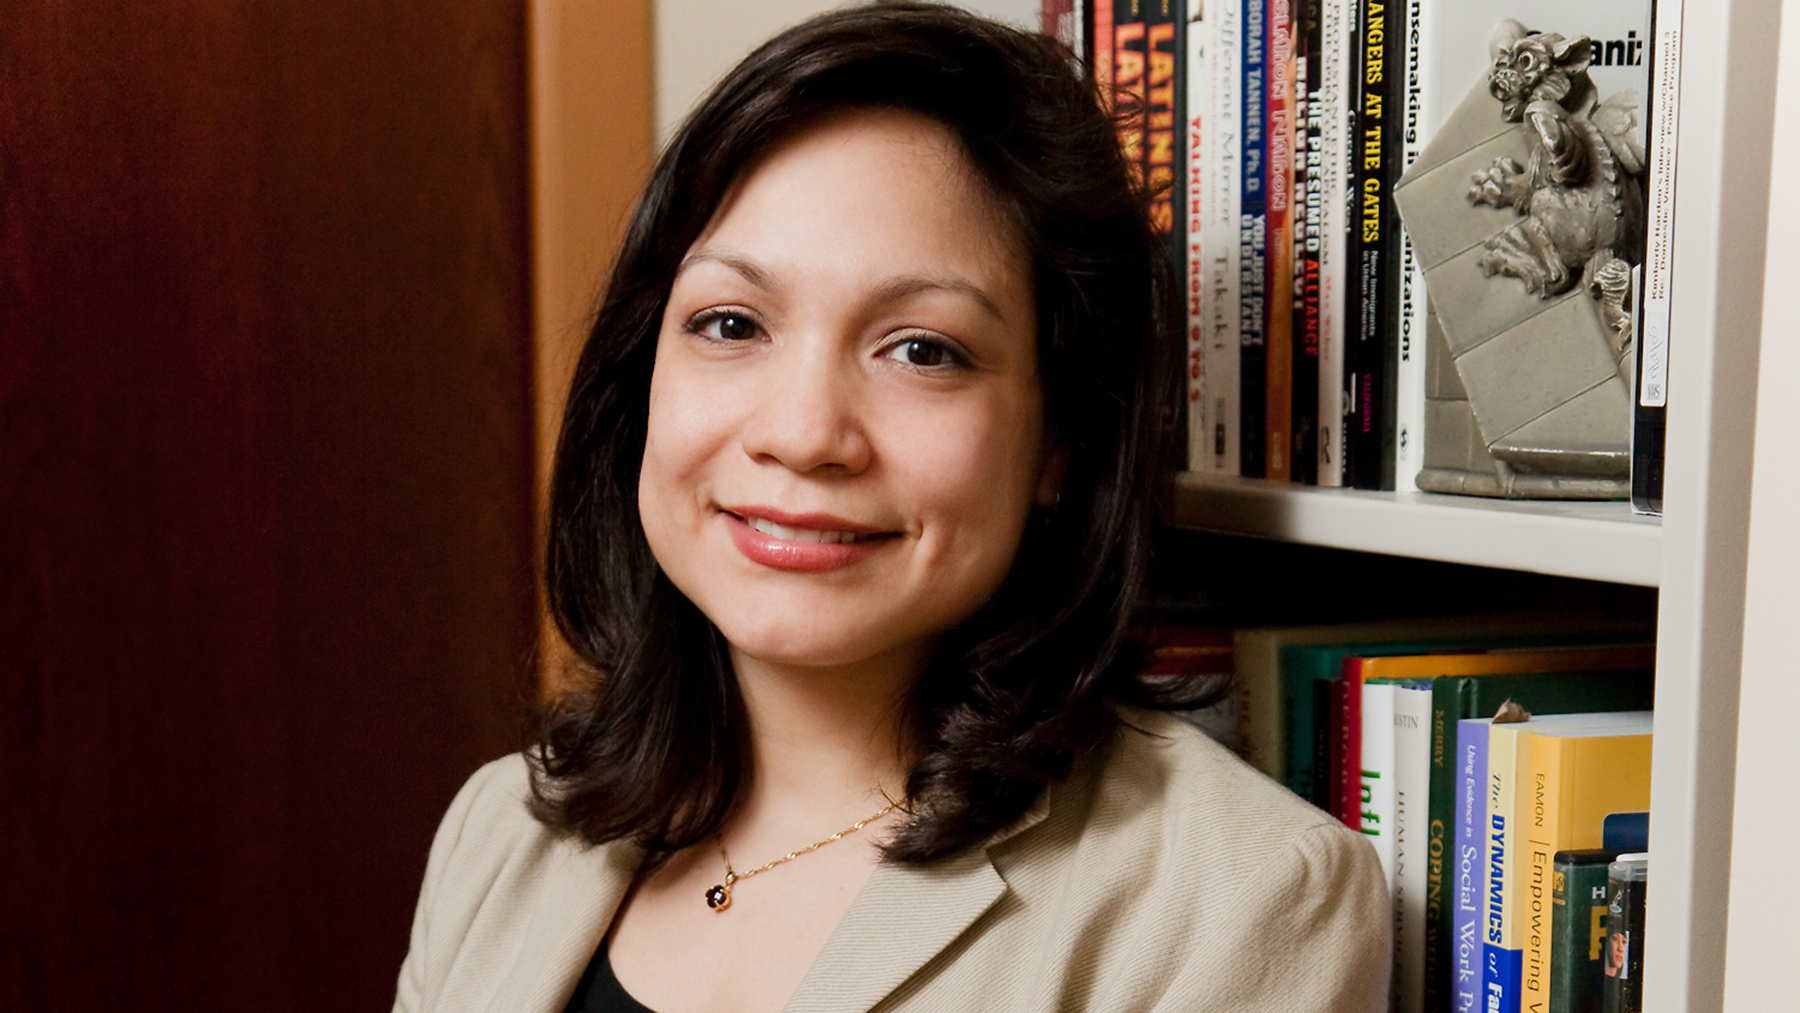 social work professor Lissette Piedra.  Photo by L. Brian Stauffer